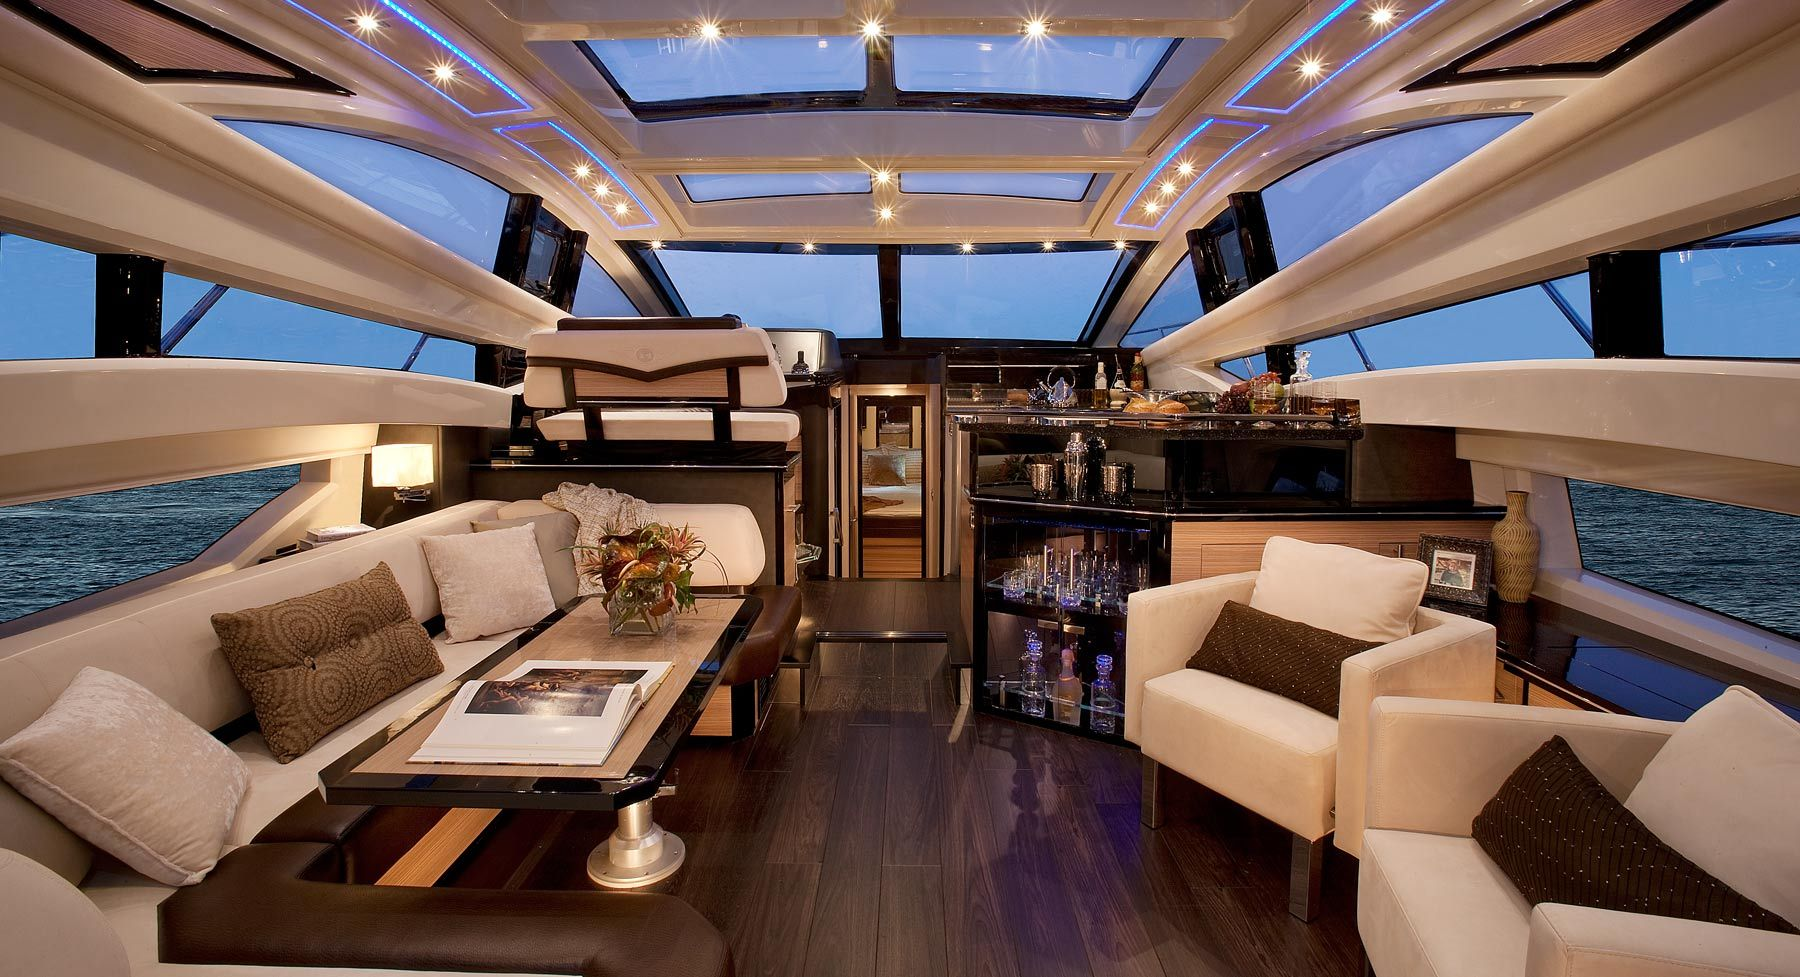 Marquis 500SC - the most gorgeous yacht interior around ...